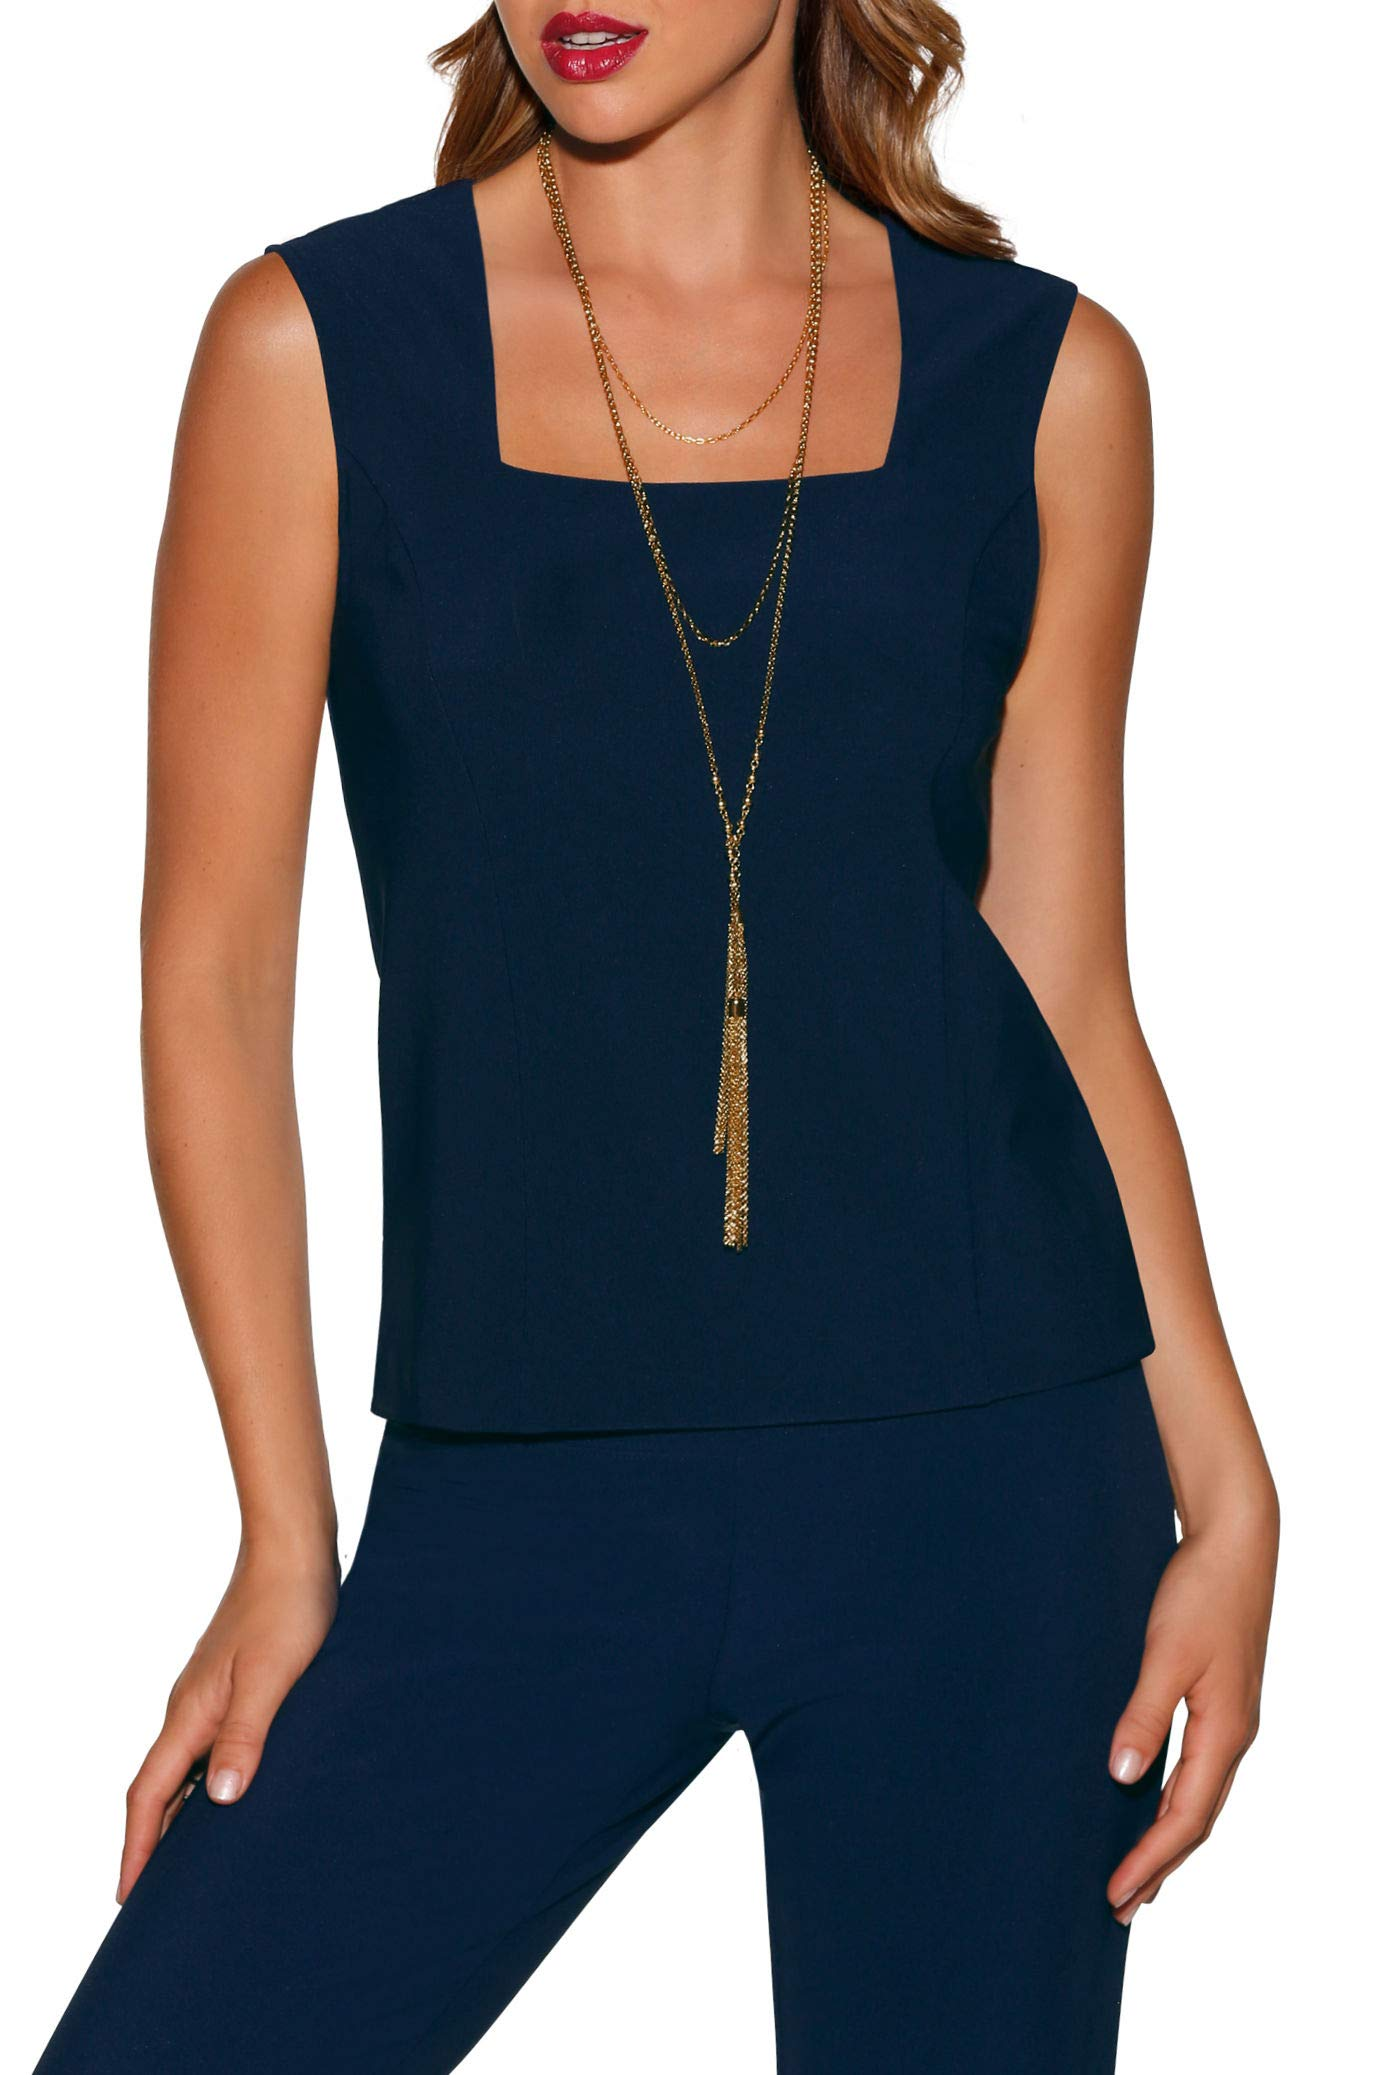 Beyond Travel Women's Wrinkle-Resistant Basic Sleeveless Cropped Solid Color Knit Shell Top Maritime Navy Medium